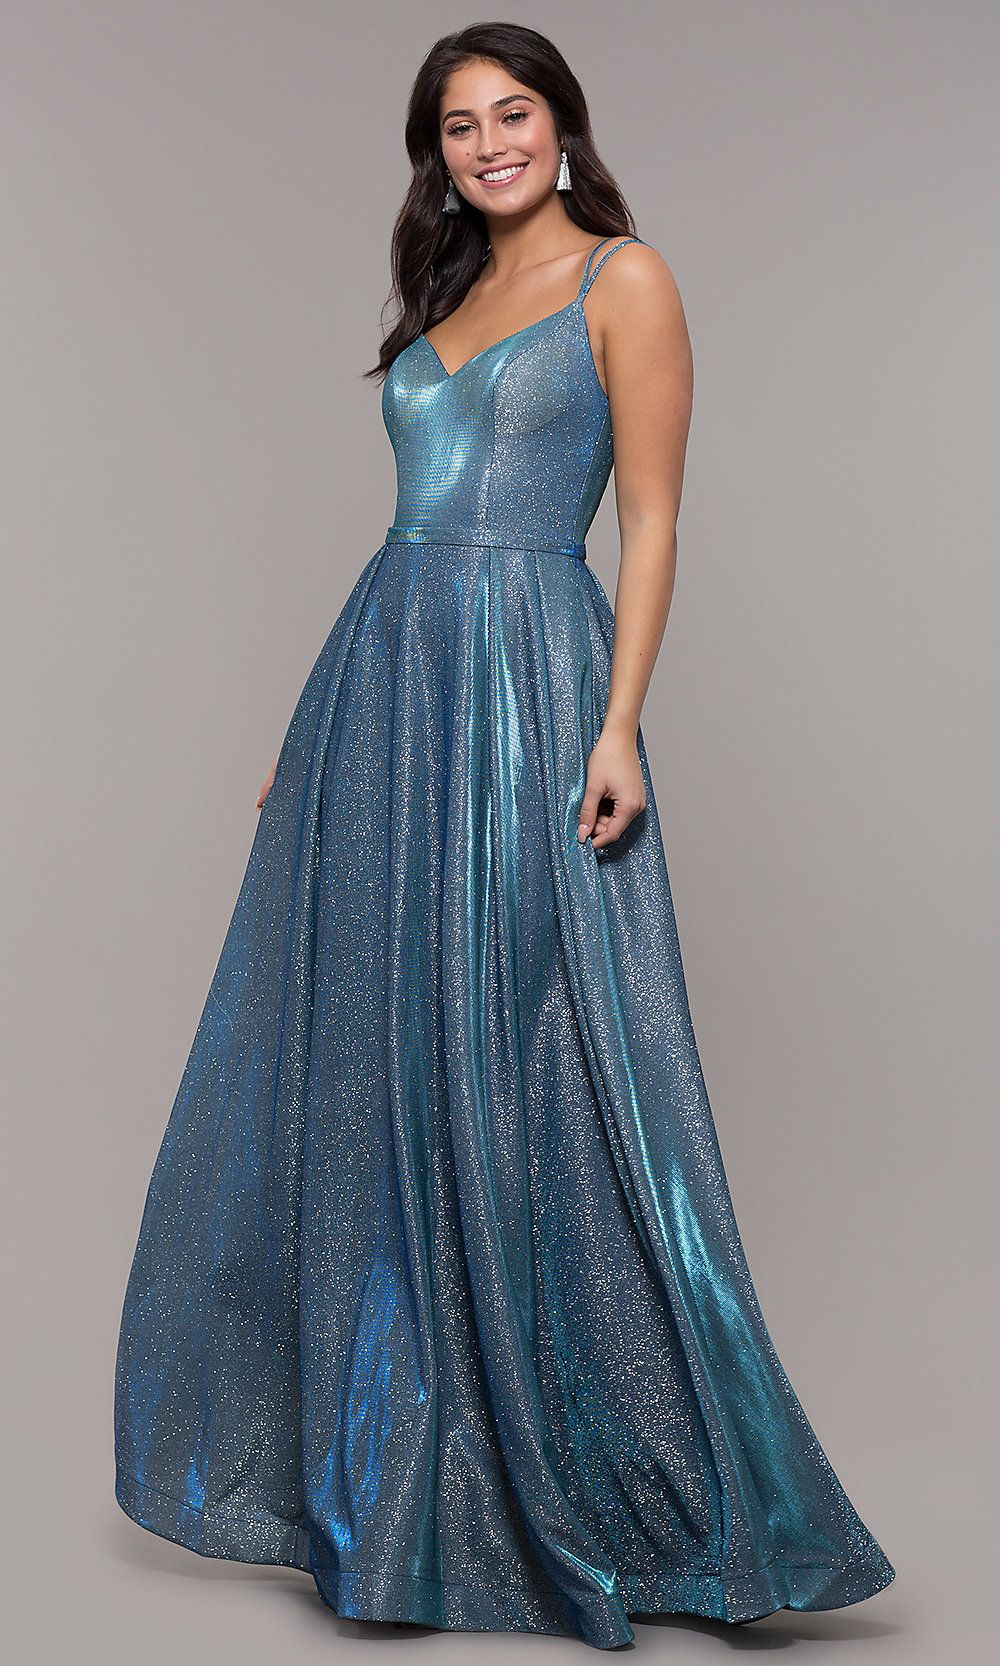 Metallic Long Sweetheart Formal Sparkly Prom Dress Jersey Prom Dress Metallic Prom Dresses Prom Dresses With Pockets